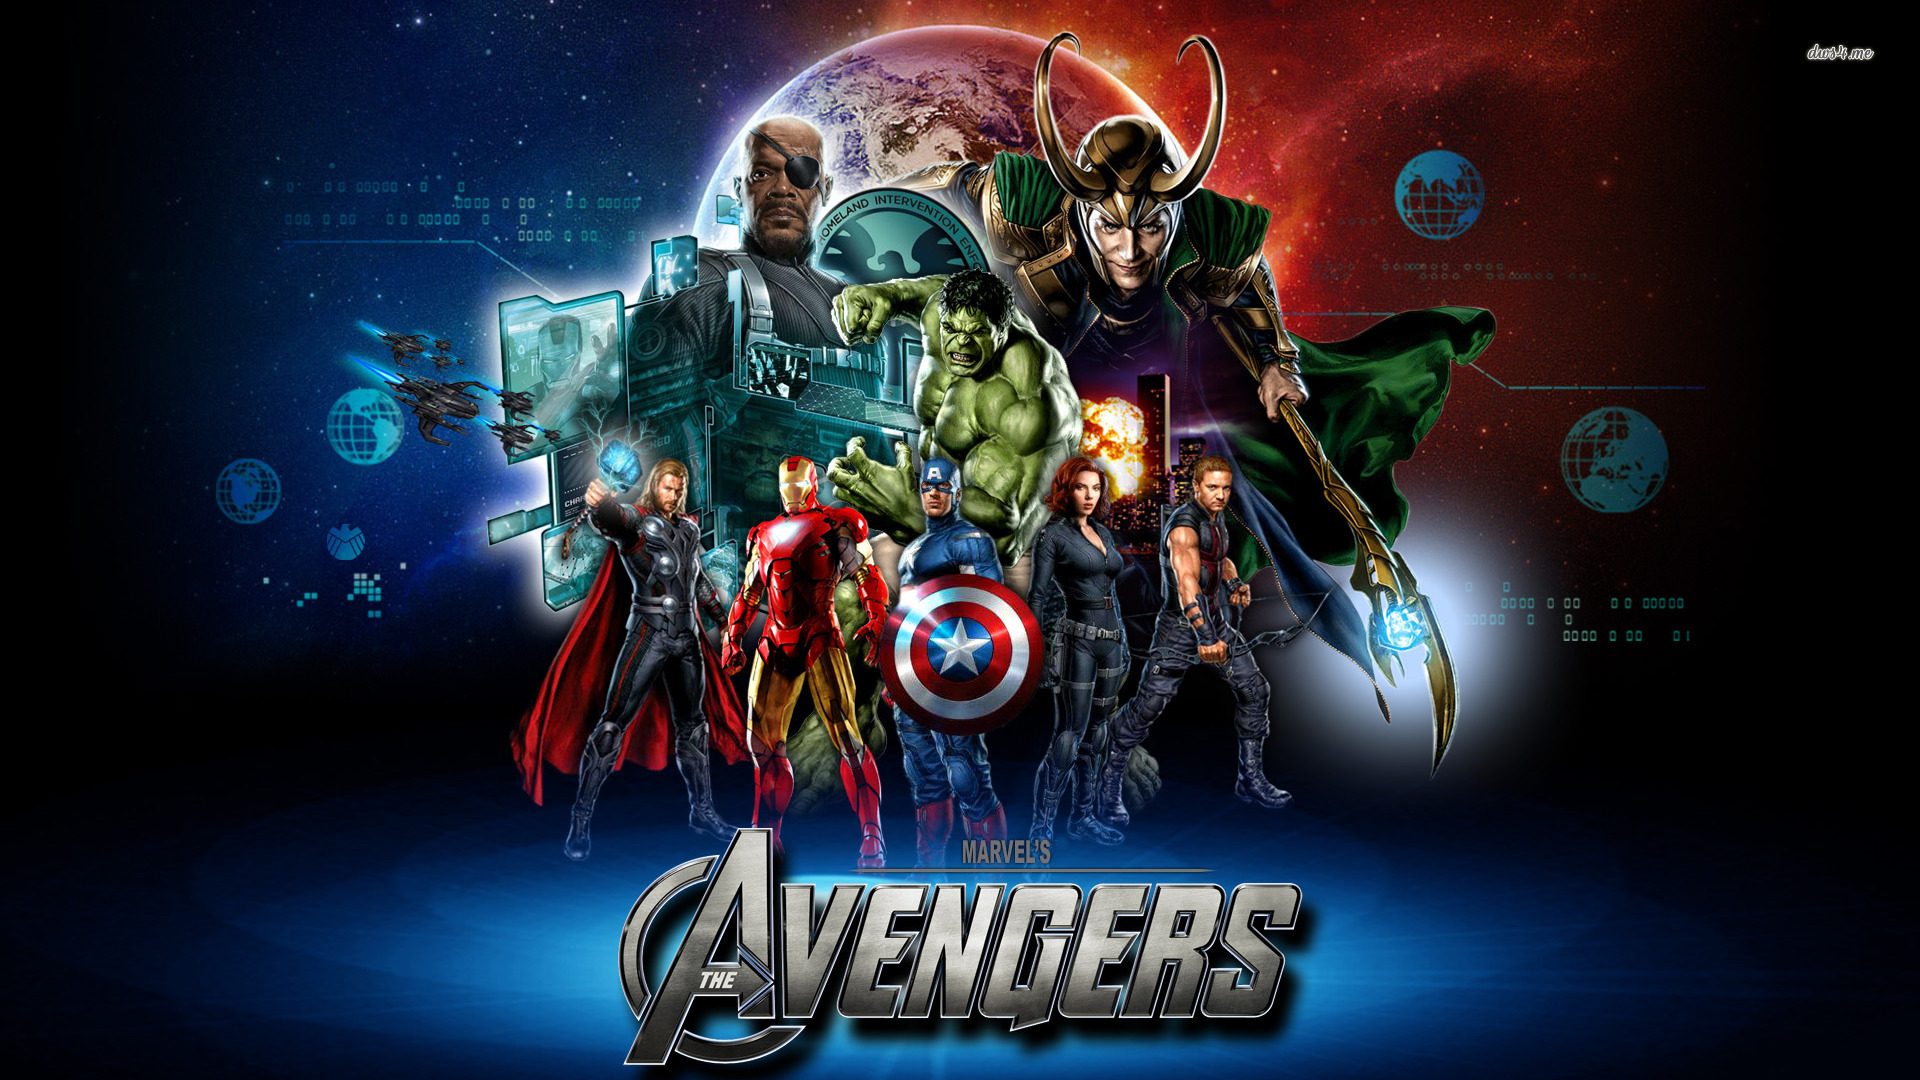 The Avengers wallpaper   Movie wallpapers   4264 1920x1080